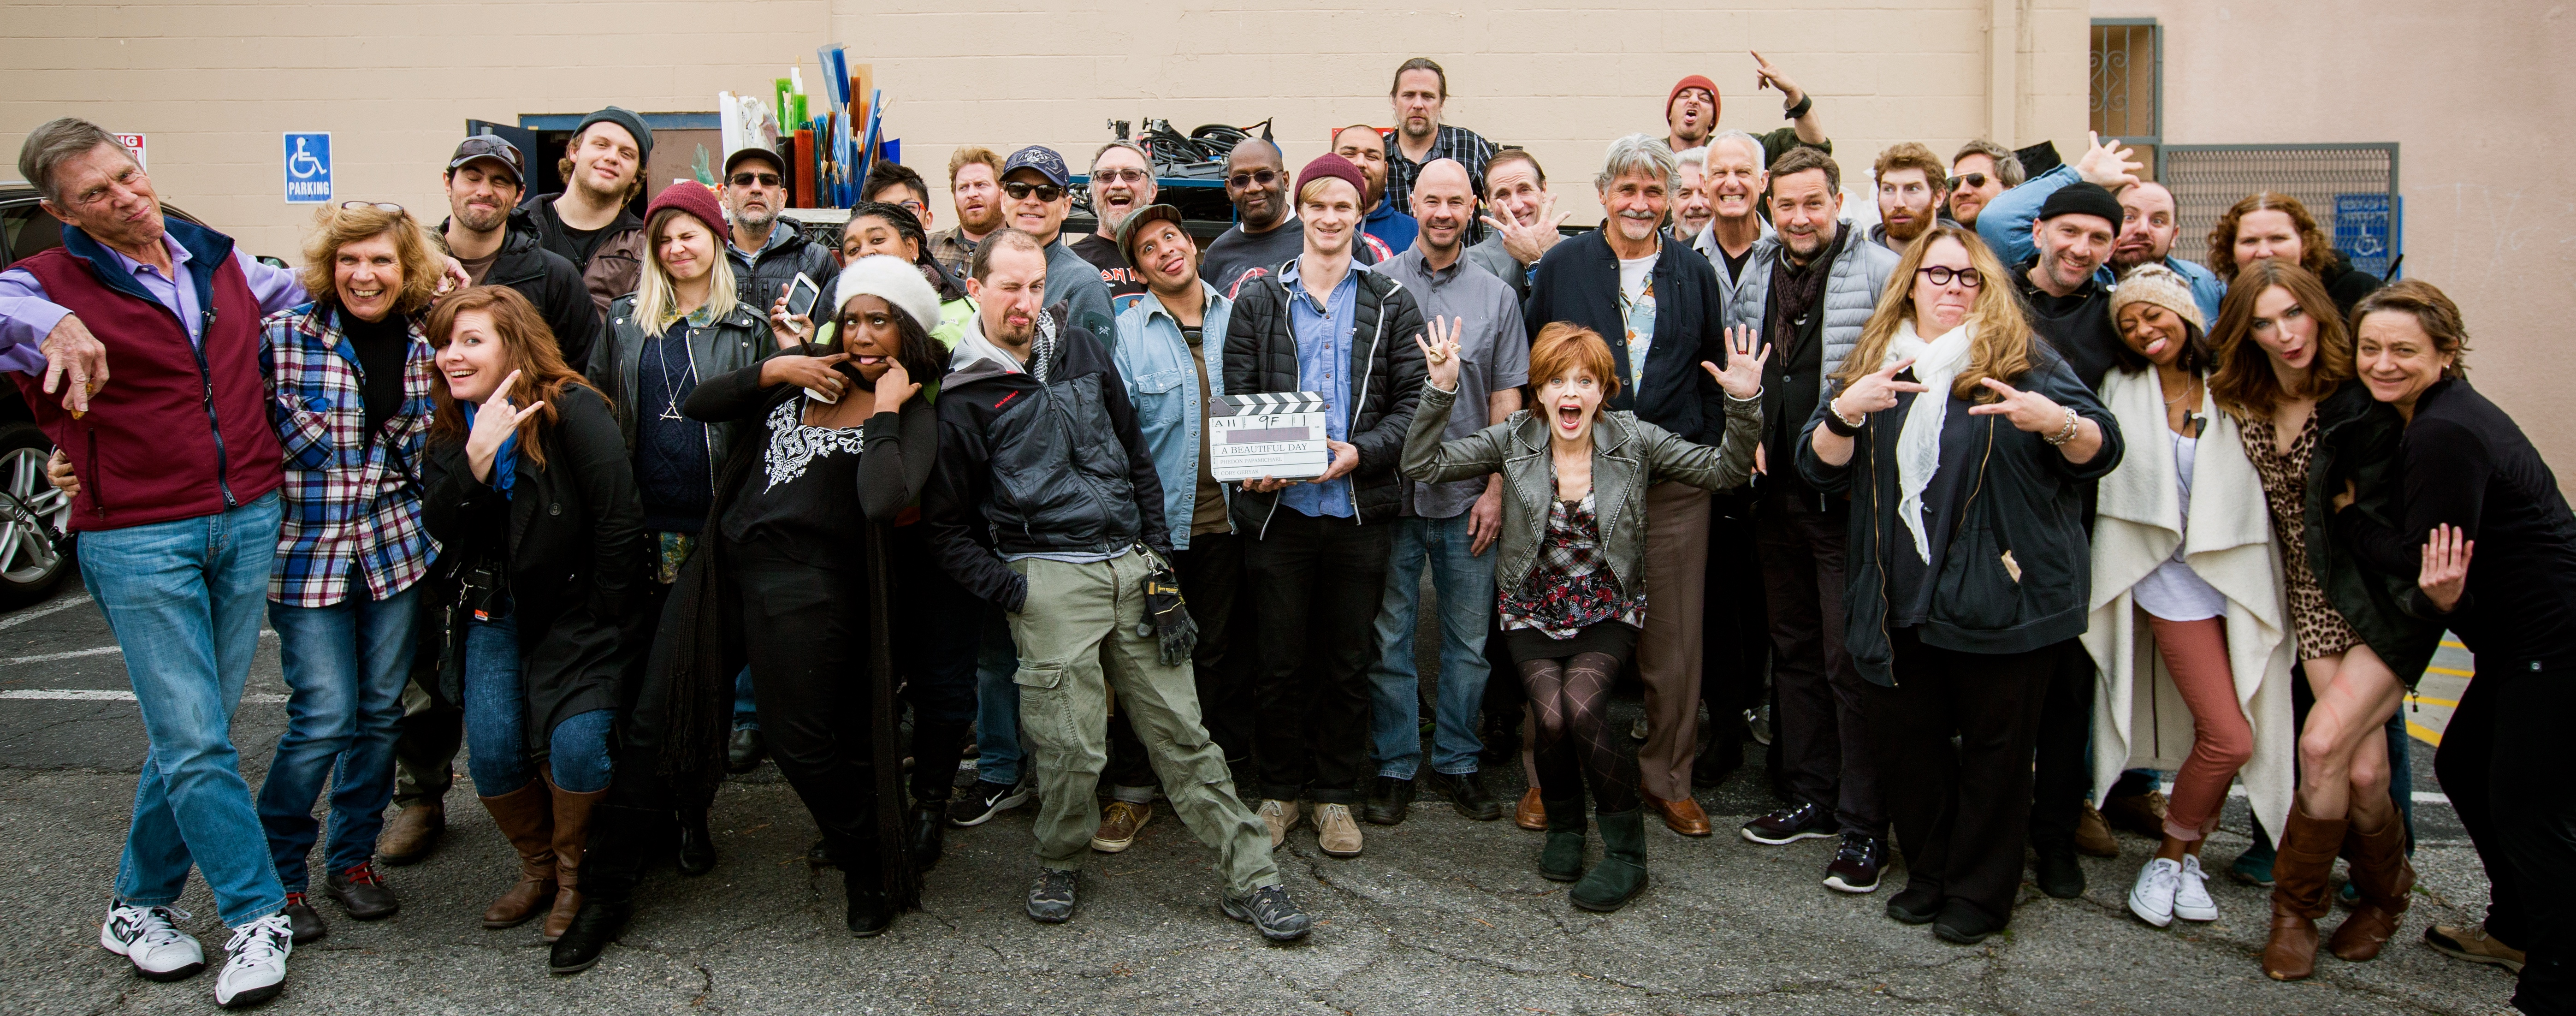 Papamichael and the cast and crew of his short A Beautiful Day.